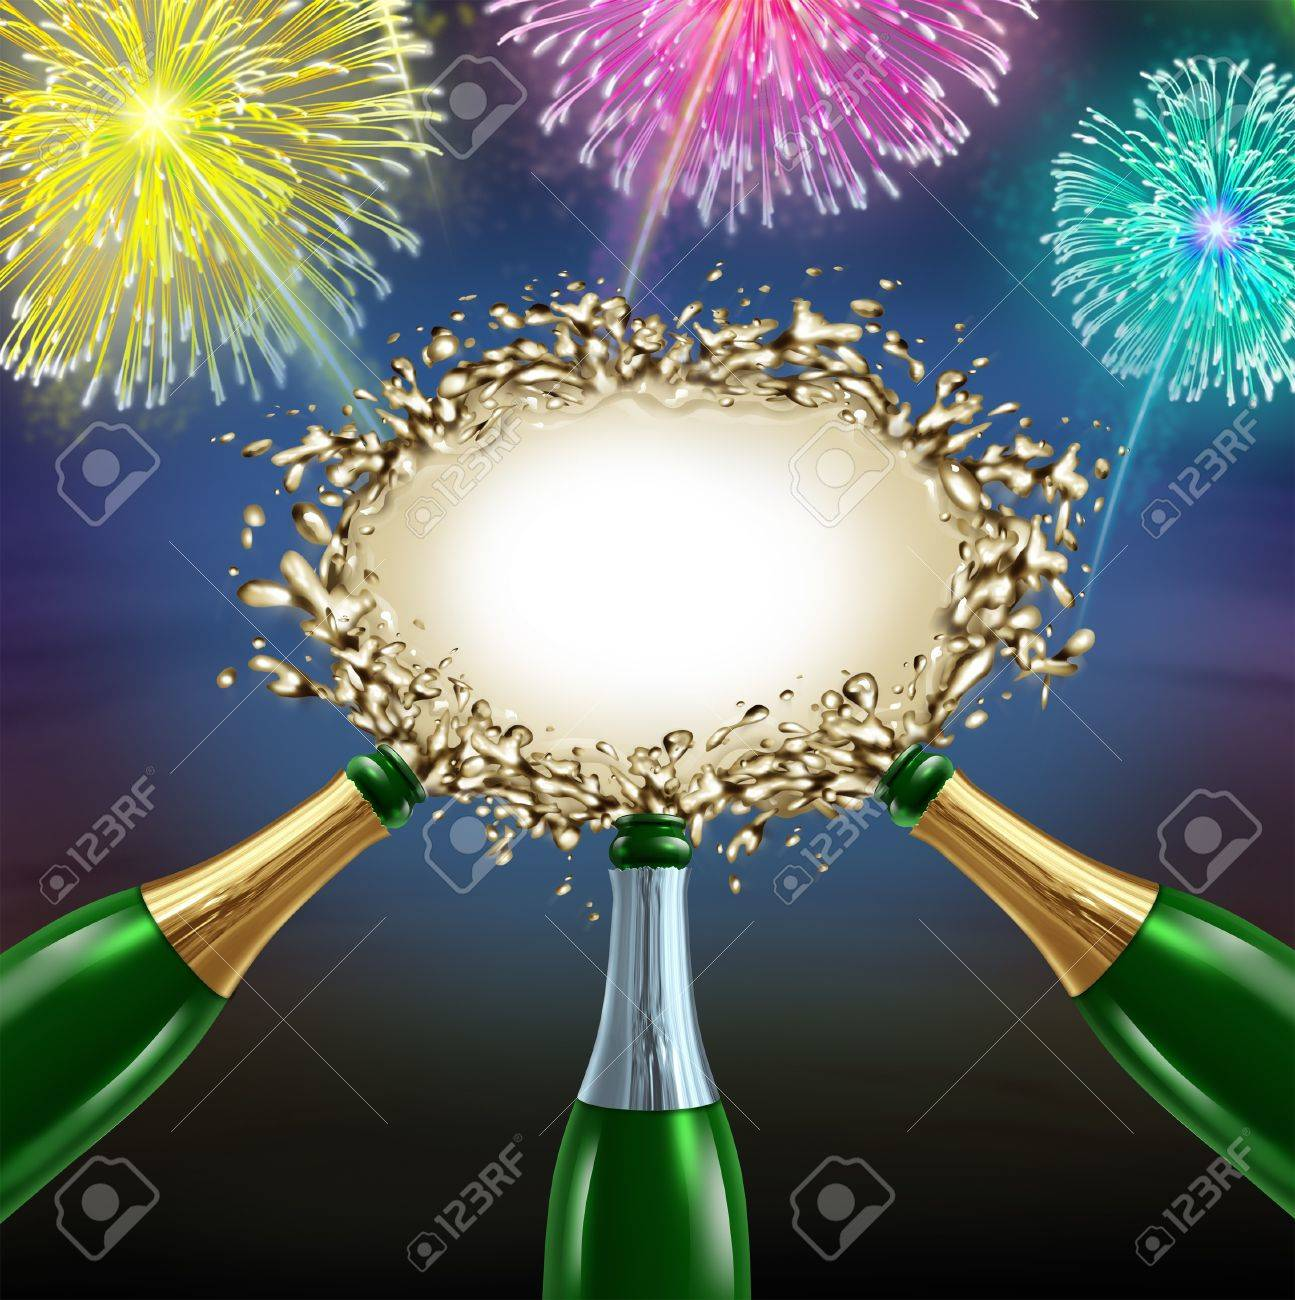 Celebrating message with uncorked exploding champagne bottles splashing sparkling wine into the center as a shape of a blank sign with fireworks for an important happy fun celebration communication Stock Photo - 16831824